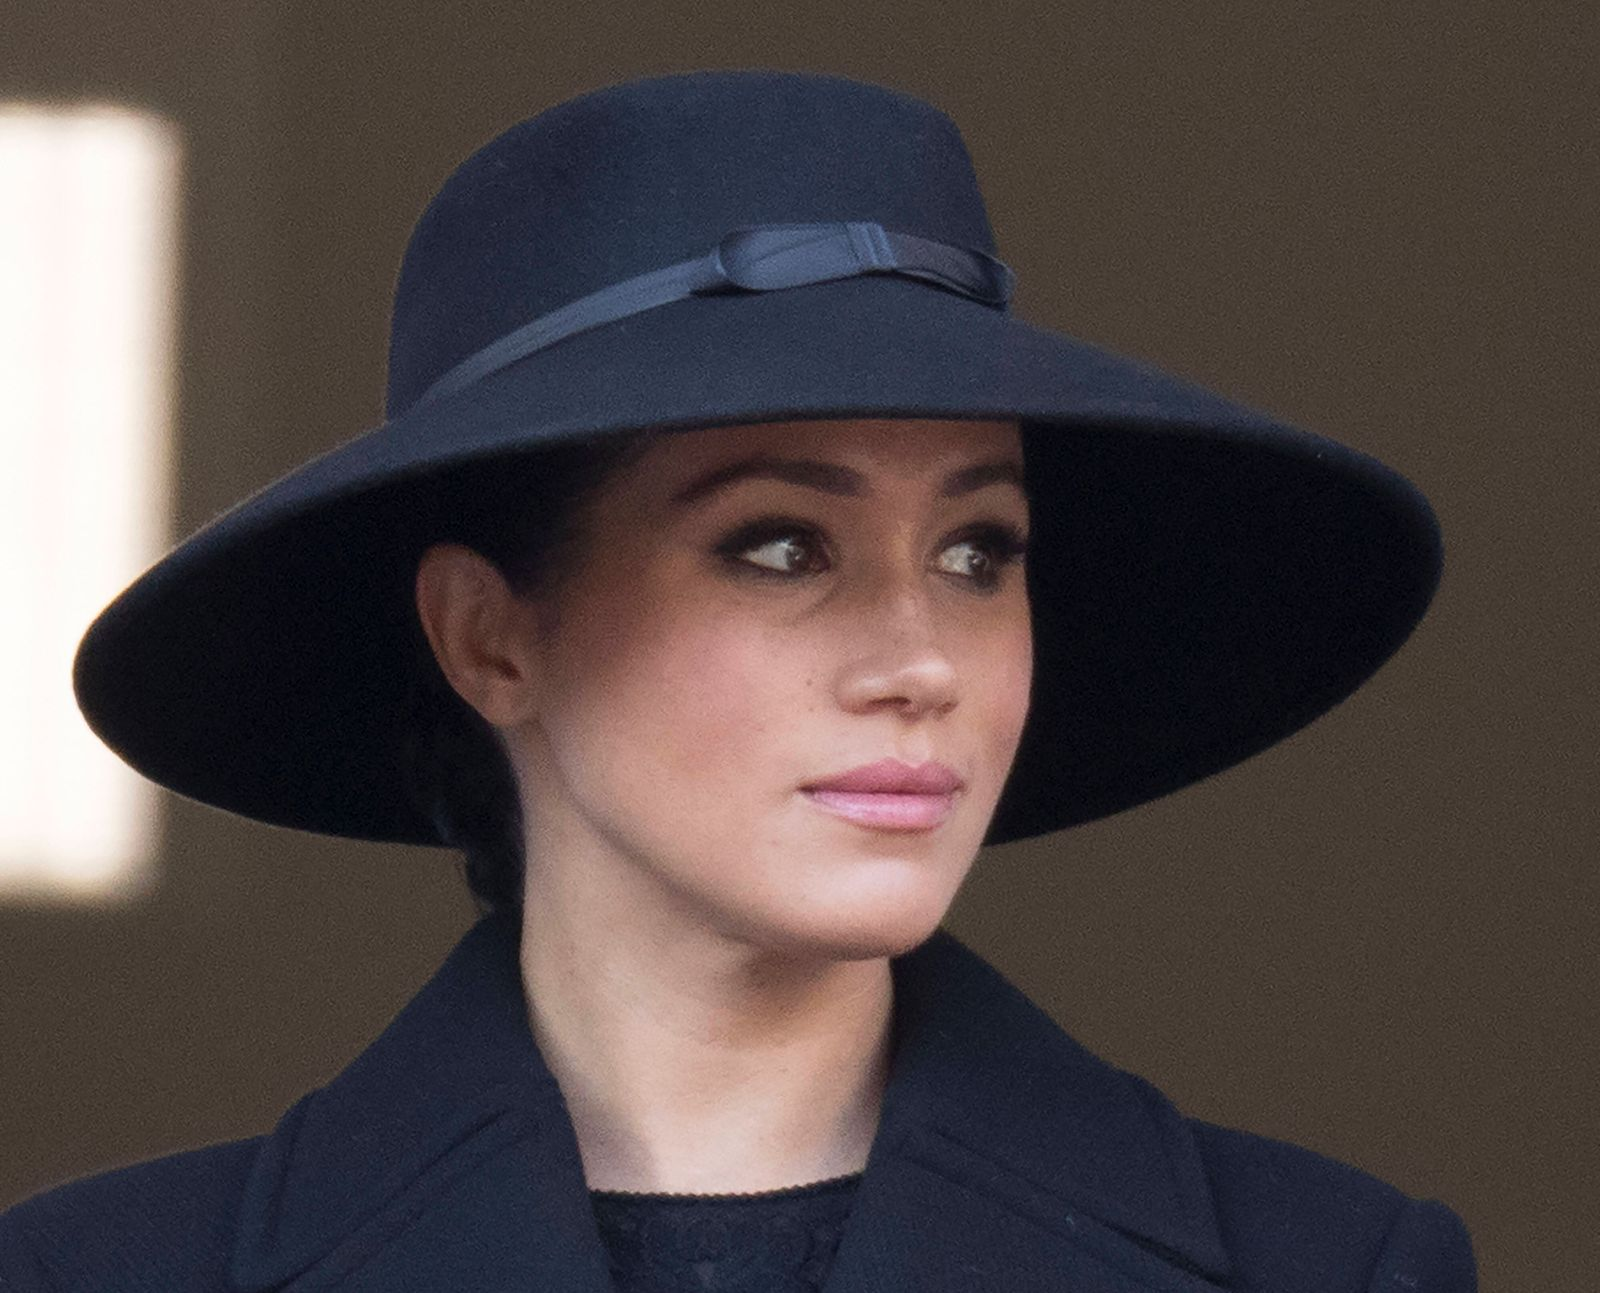 . 10/11/2019. London, United Kingdom. Meghan Markle, Duchess of Sussex at the Remembrance Sunday service at The Cenotaph